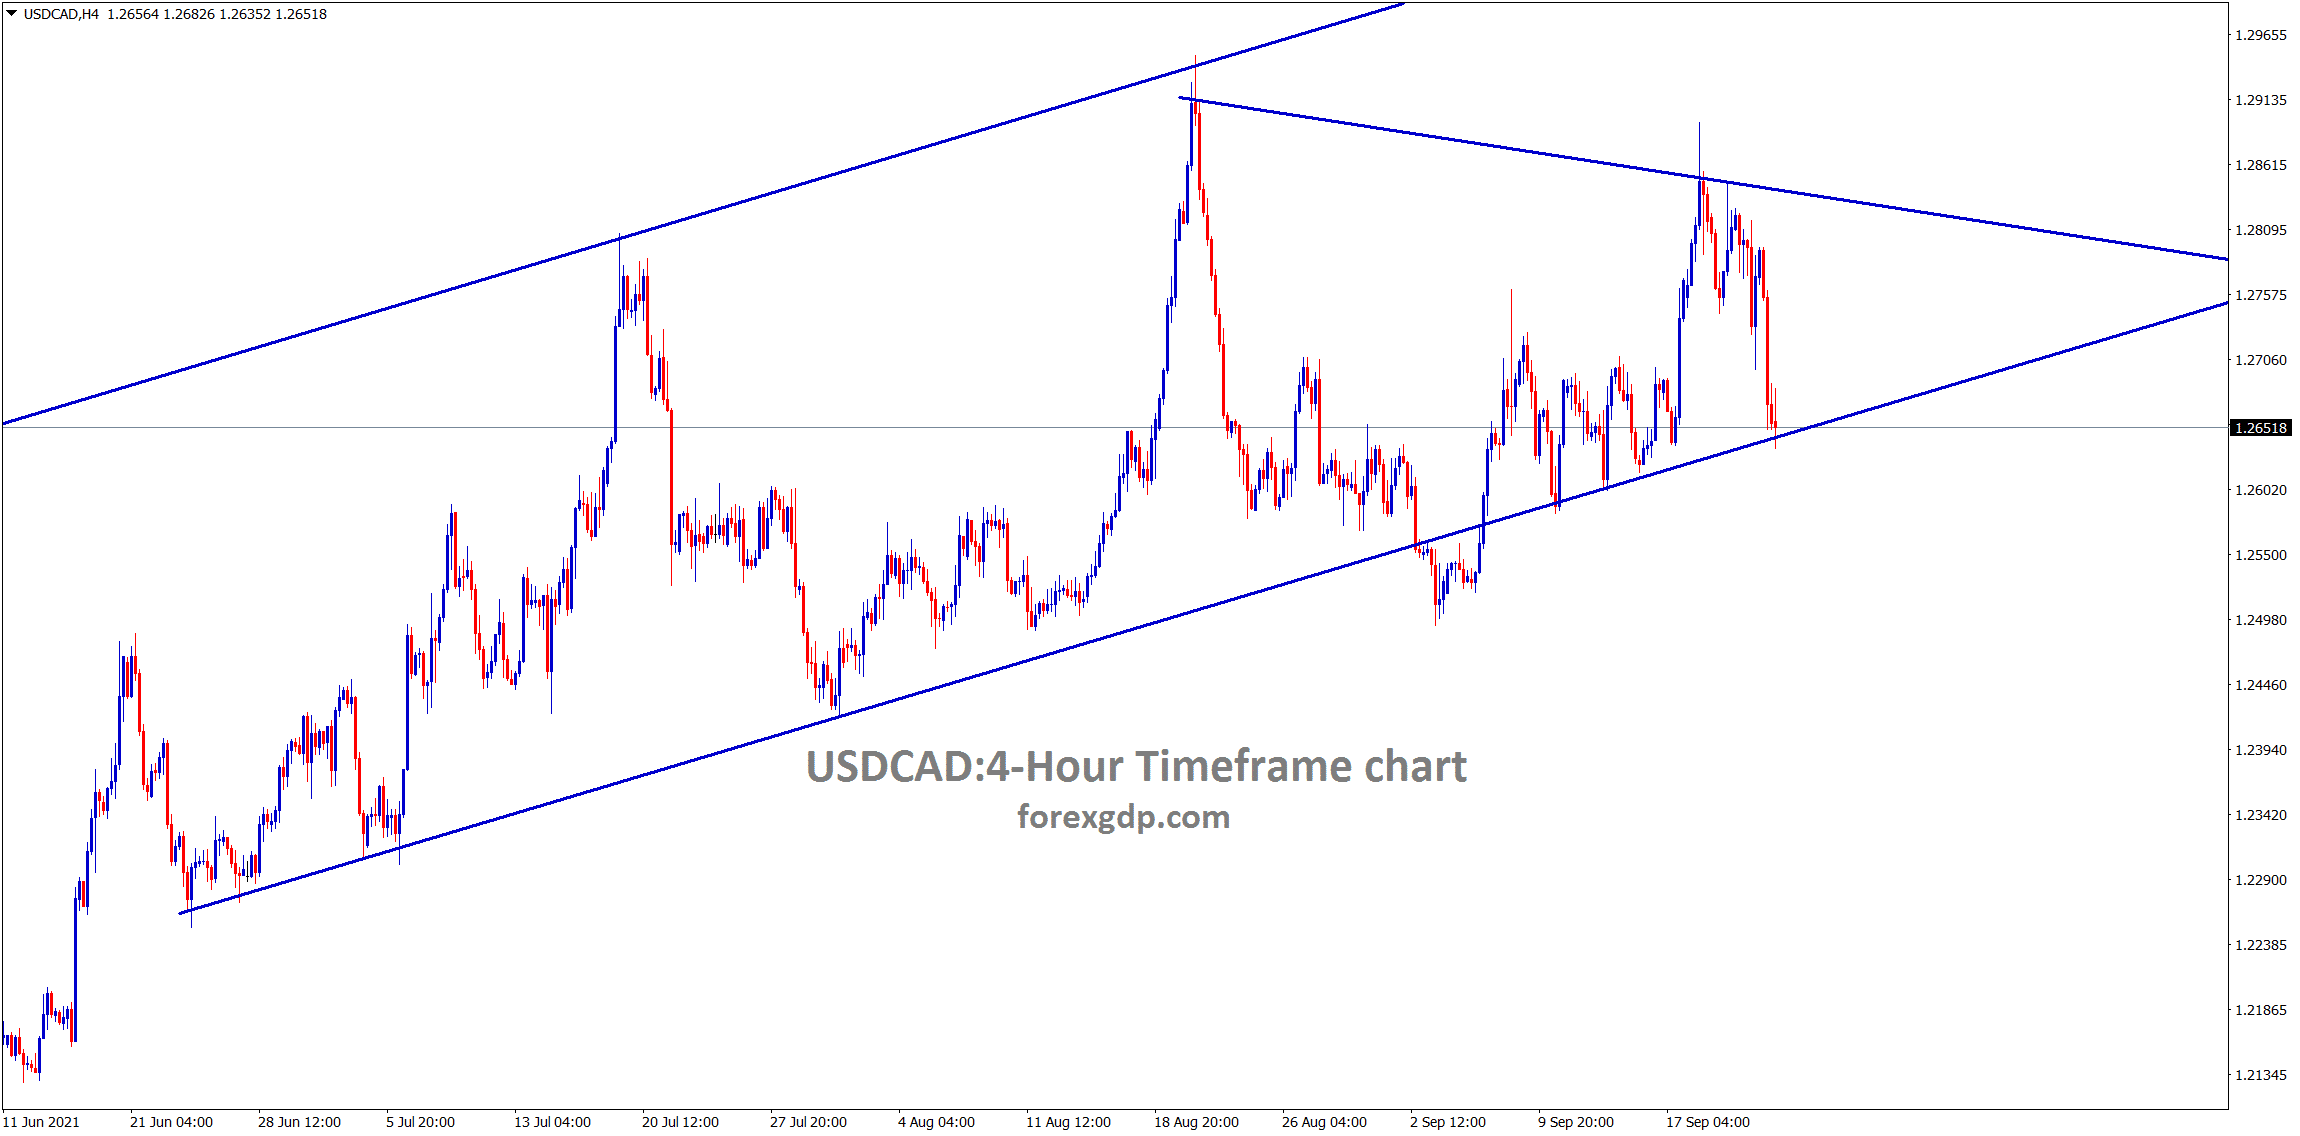 USDCAD hits the higher low area of the uptrend line wait for reversal or consolidation